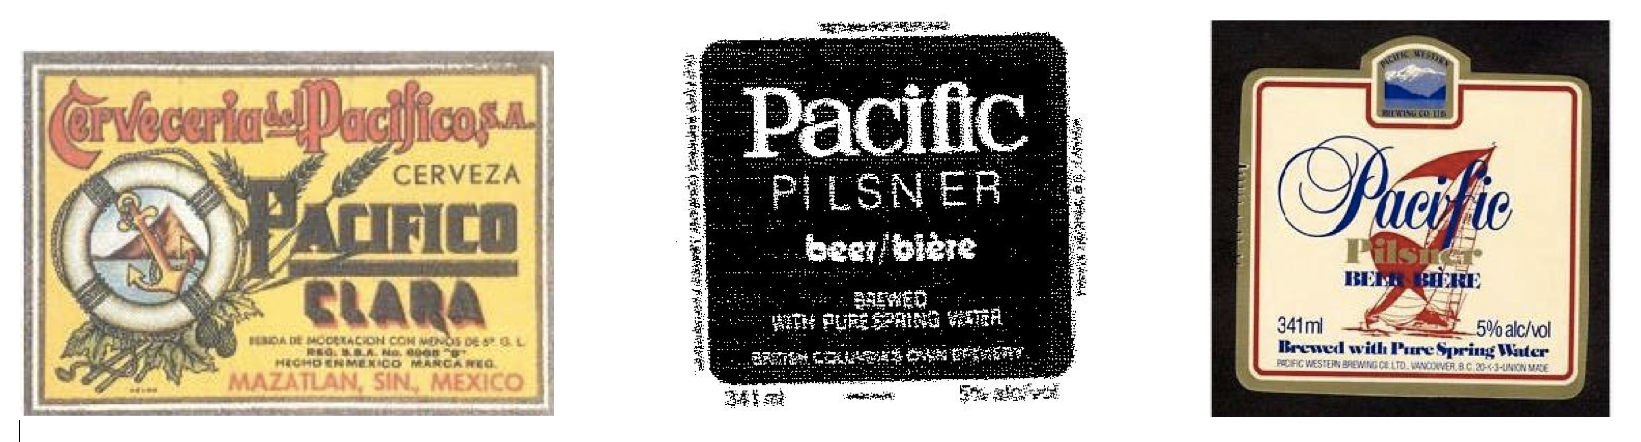 Pacifico land pacific labels